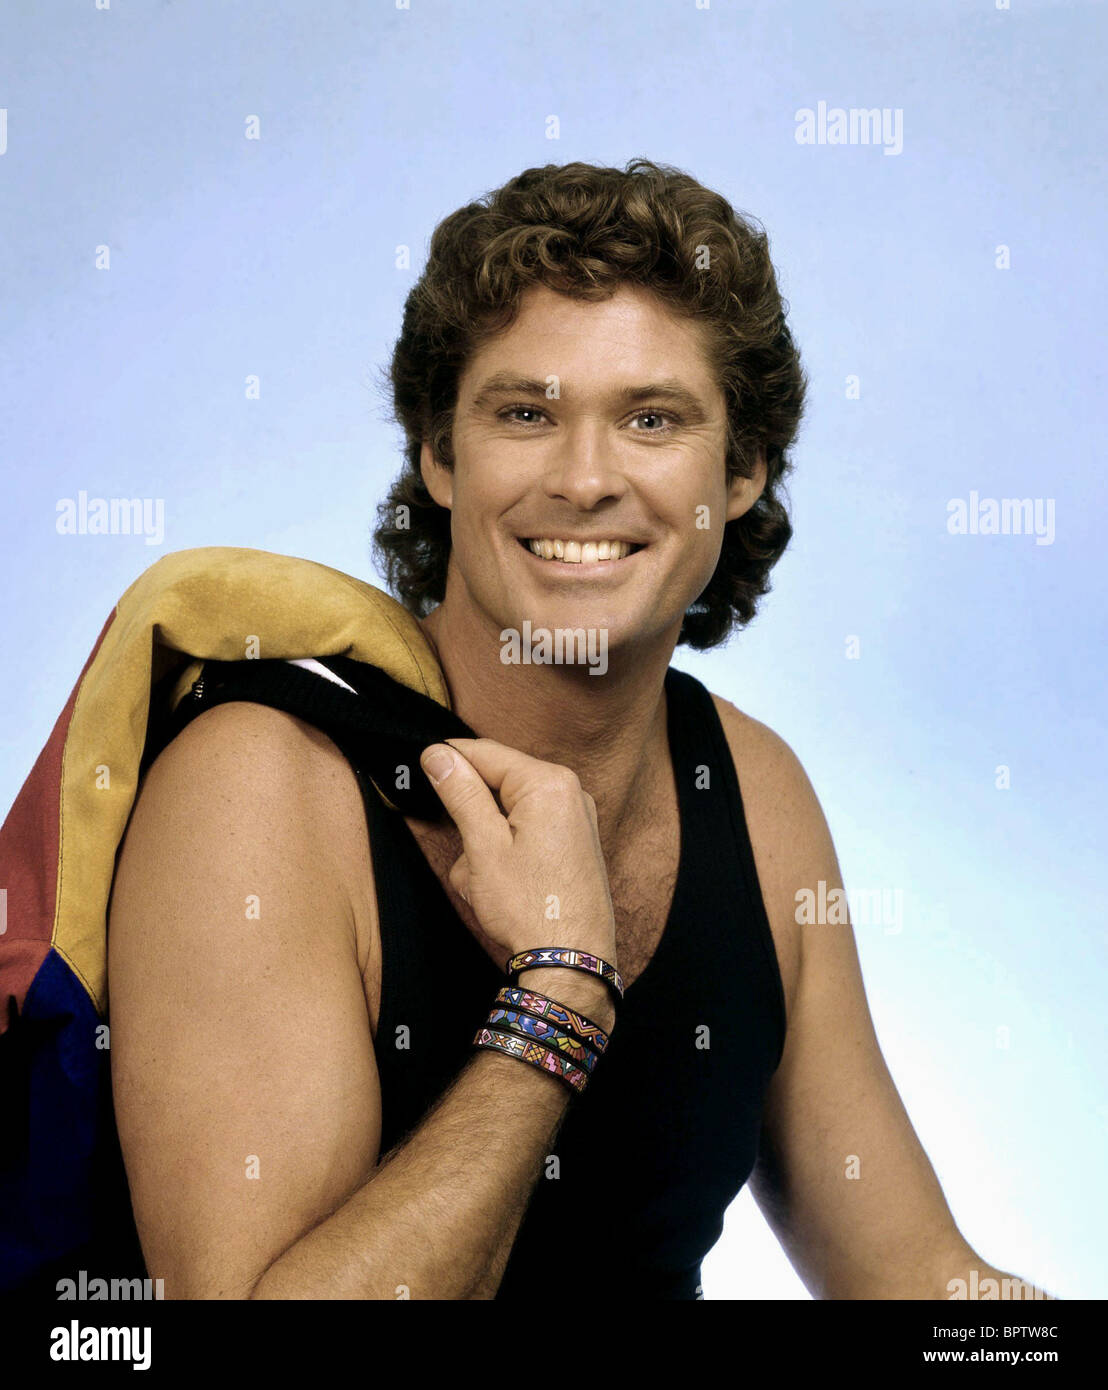 DAVID HASSELHOFF ACTOR AND SINGER (1989) - Stock Image